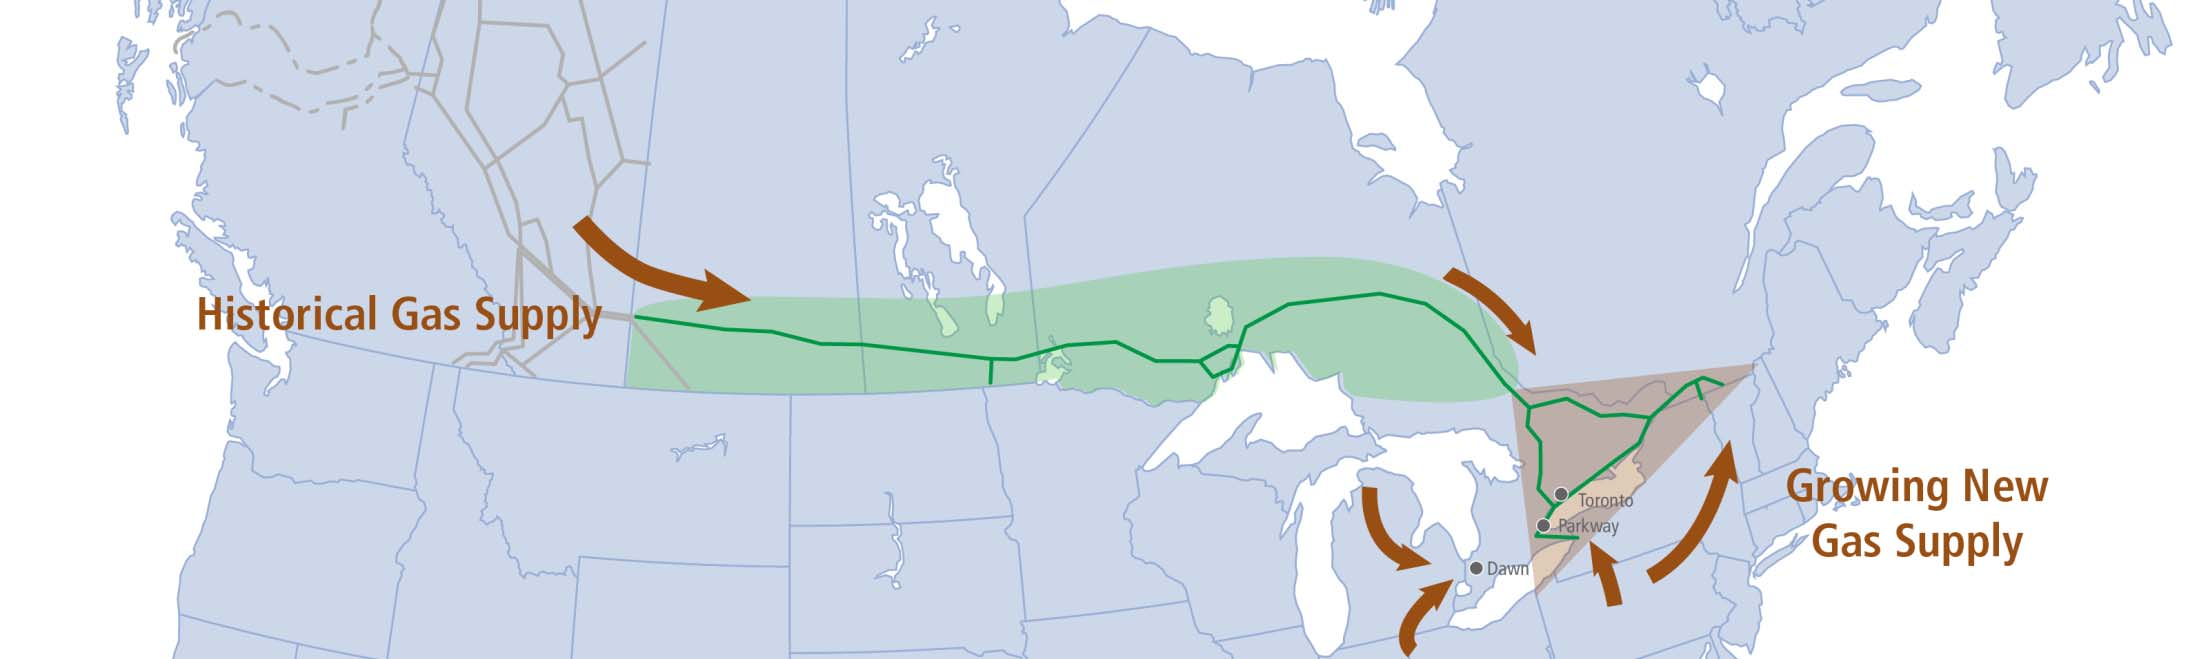 Canadian Mainline Critically Important Infrastructure 2015 Investment Base Delta 2020 Investment Base Western Leg $1.4 B -0.4 $1.0 B Northern Ontario $1.3 B -1.3 $0.0 B Eastern Triangle $1.9 B +2.